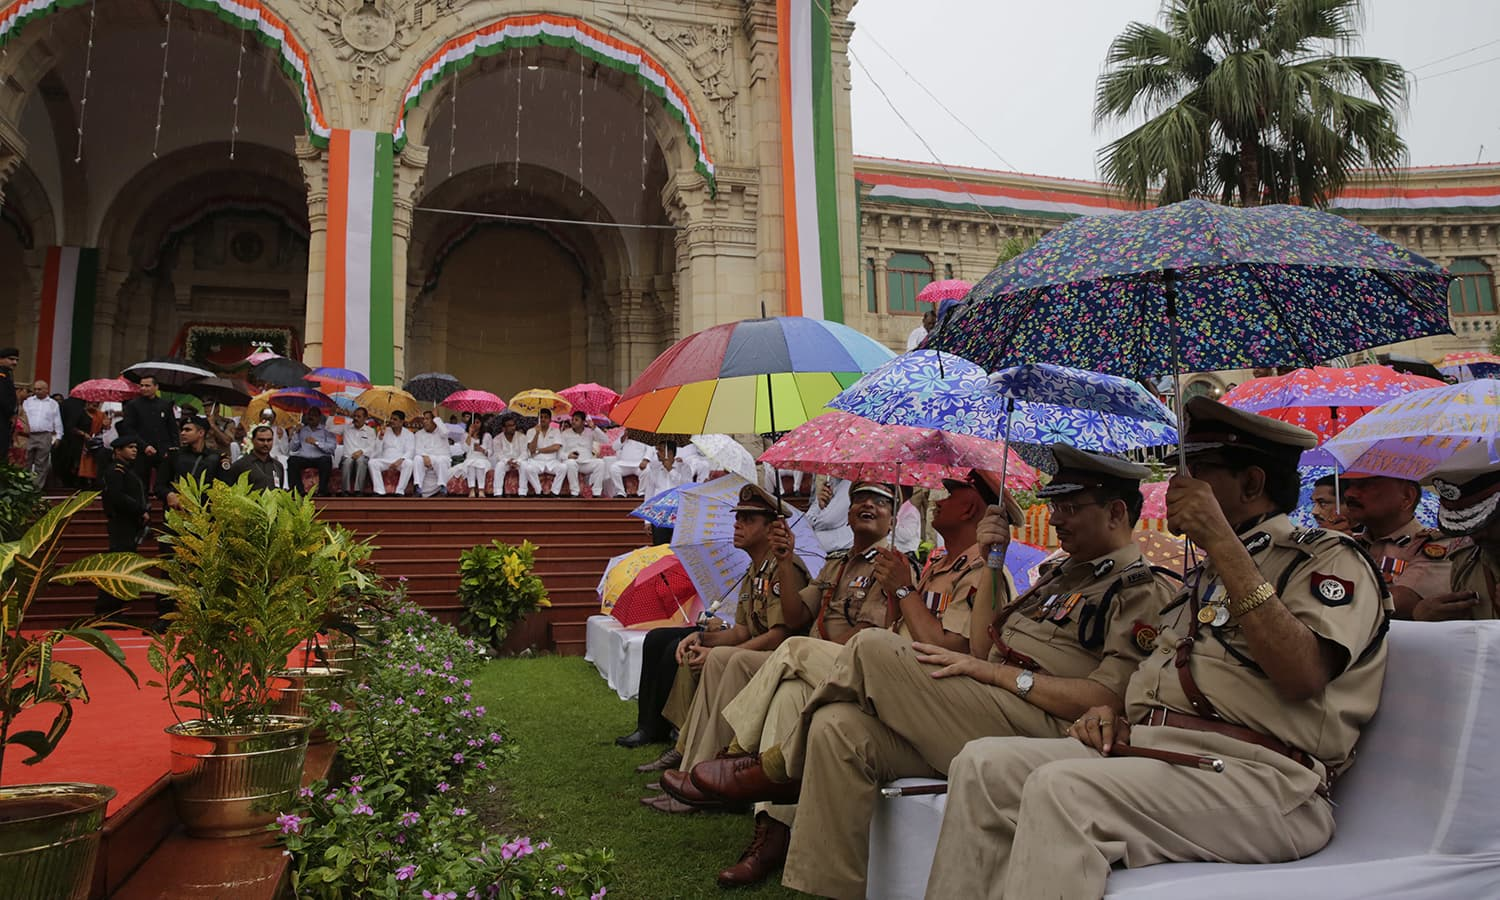 Uttar Pradesh state officers hold umbrellas as it rains during the national flag hoisting ceremony on Independence Day in Lucknow, India, Monday, Aug. 15, 2016. ─ AP